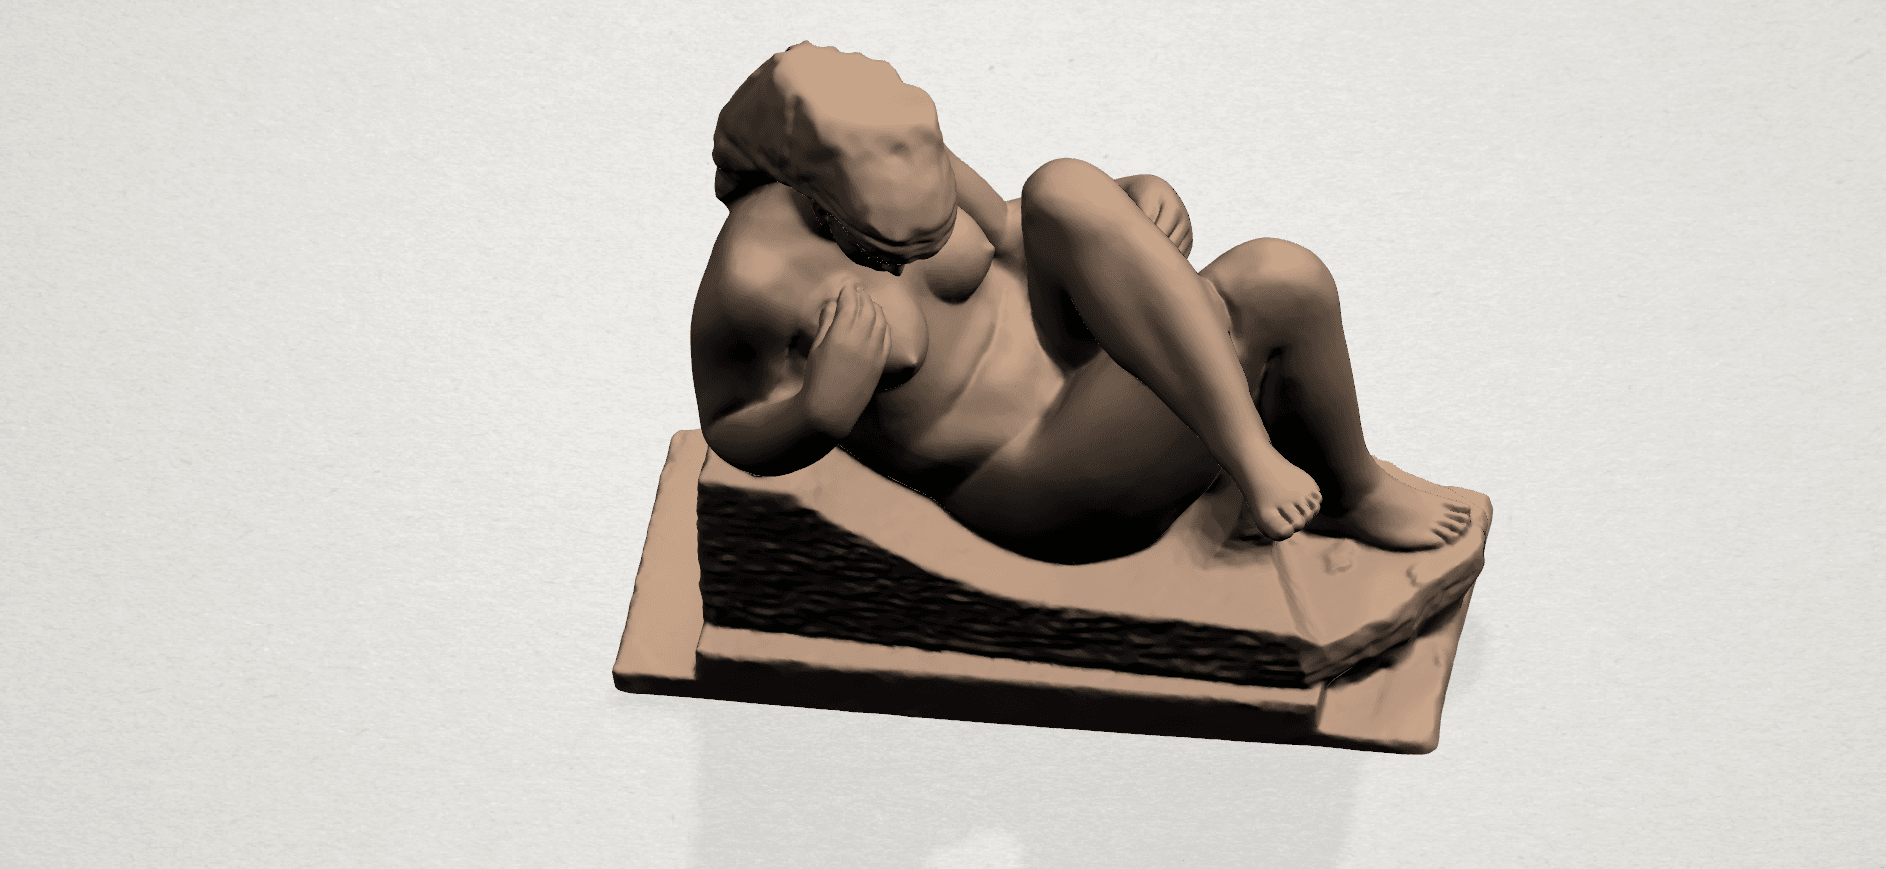 Naked Girl (xiii) A06.png Download free STL file Naked Girl 13 • 3D print design, GeorgesNikkei